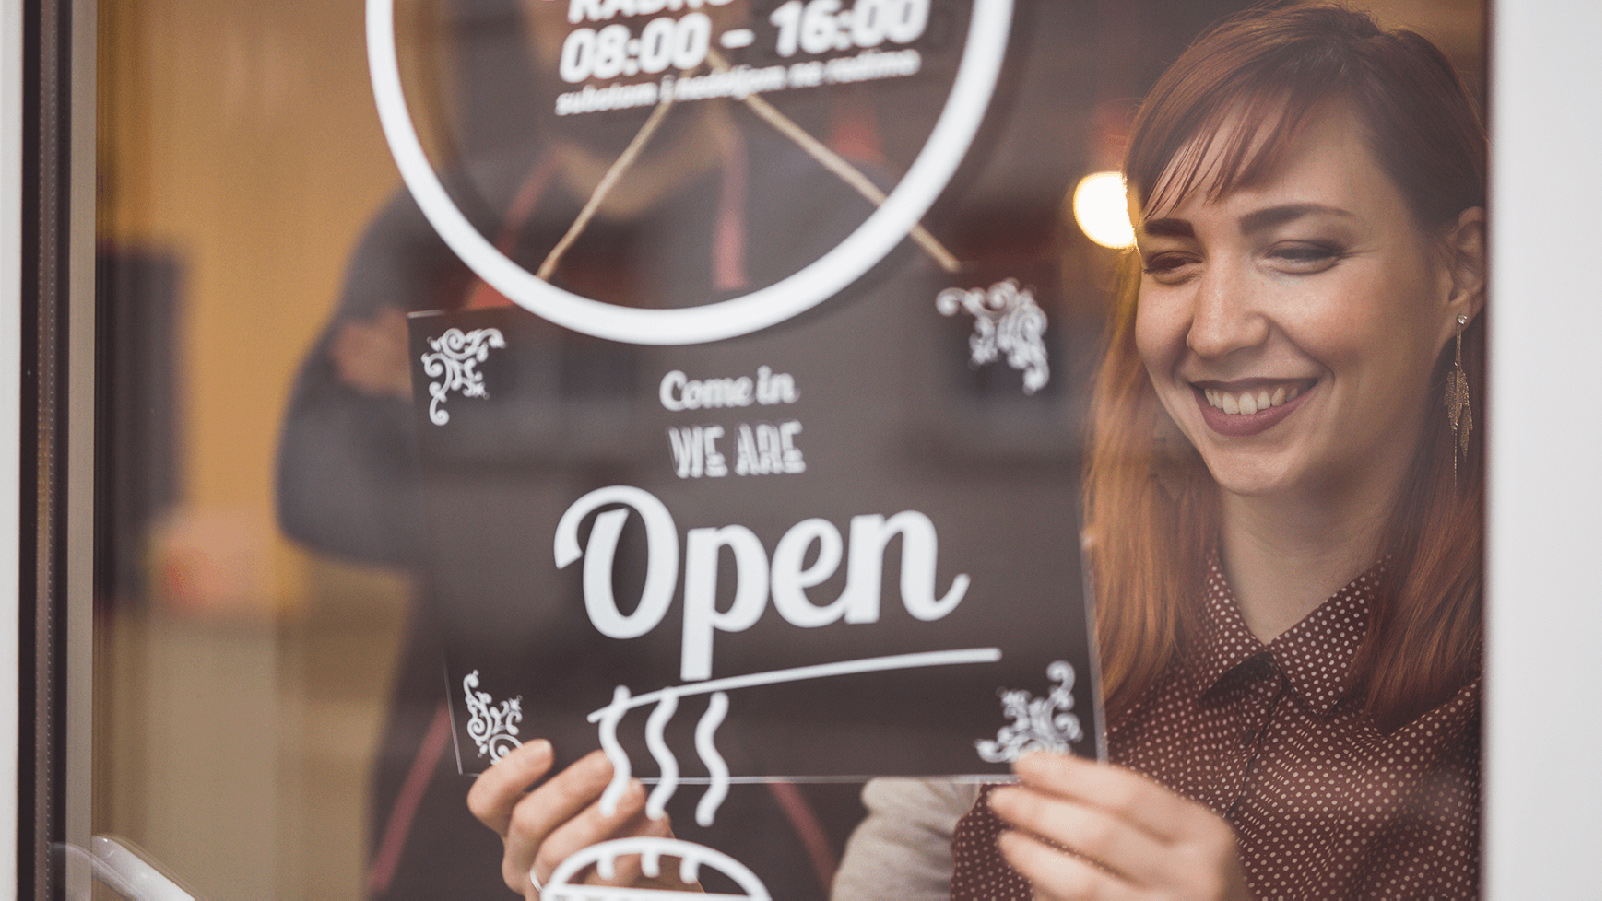 Woman smiling, putting an open sign in a storefront window.